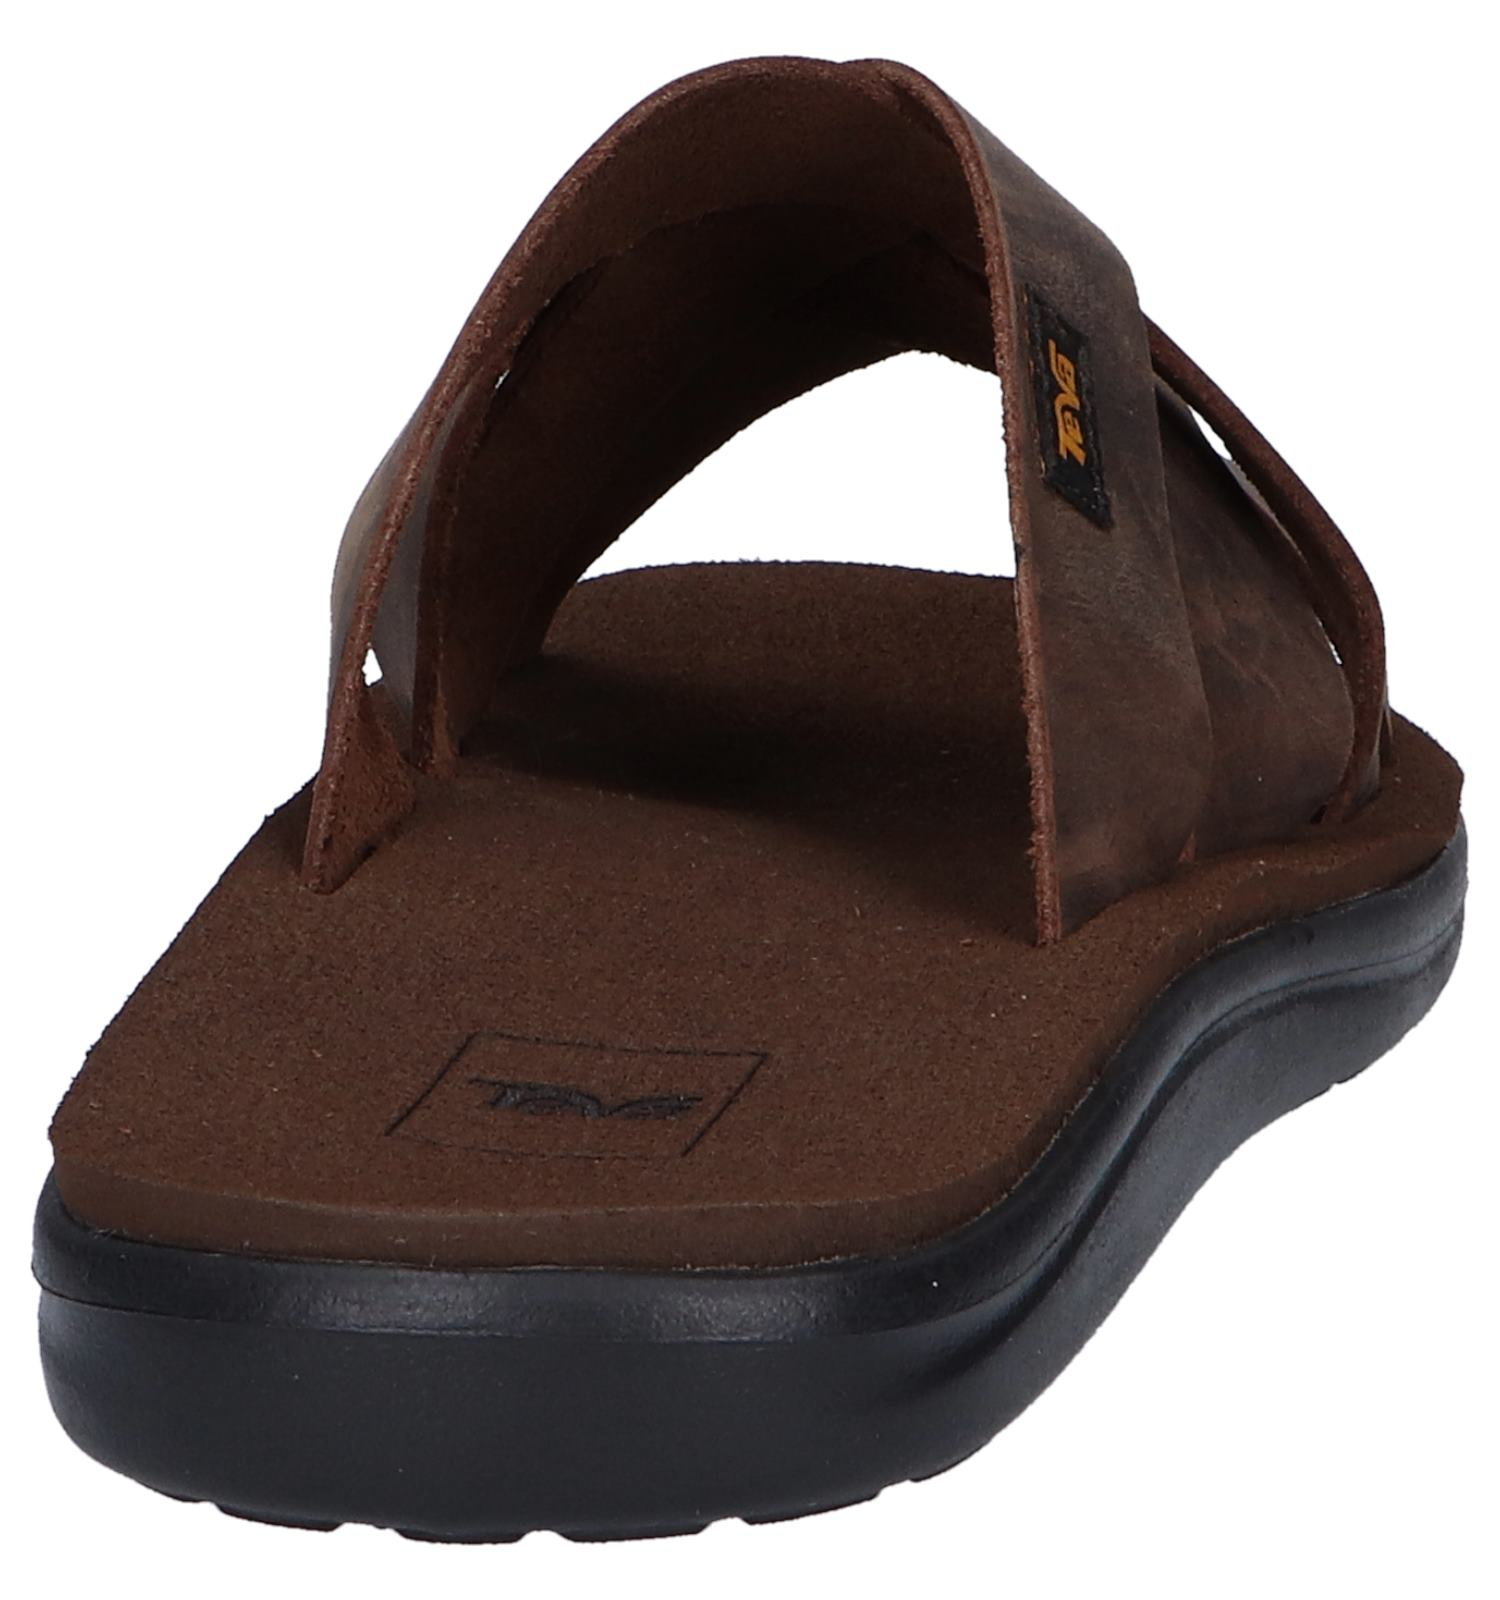 Leather Teva Slide Voya Bruine Slippers xdCroeB